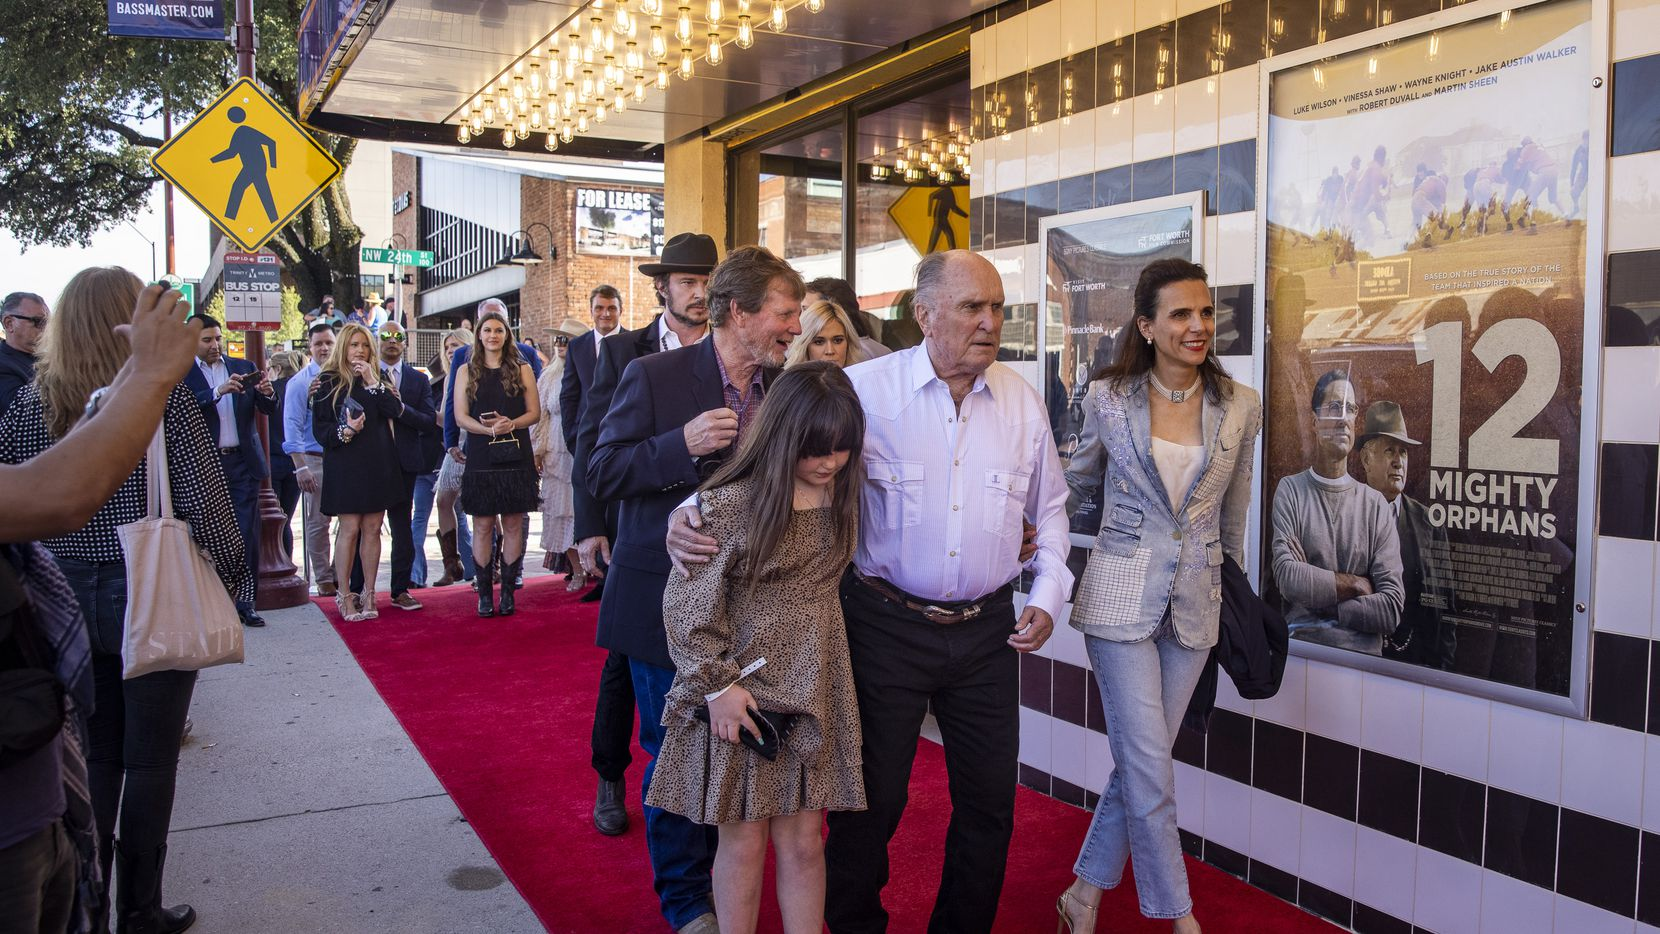 """Actor Robert Duvall, center, attends the premiere of """"12 Mighty Orphans"""" held at the ISIS Theater in Fort Worth, Texas, on Monday, June 7, 2021. The movie stars Academy Award winner Robert Duvall and Dallas' own Luke Wilson, who is the movie's leading man. The film tells the story of the 1930s-era football team from Fort Worth that captured national attention during its Cinderella season. (Lynda M. González/The Dallas Morning News)"""